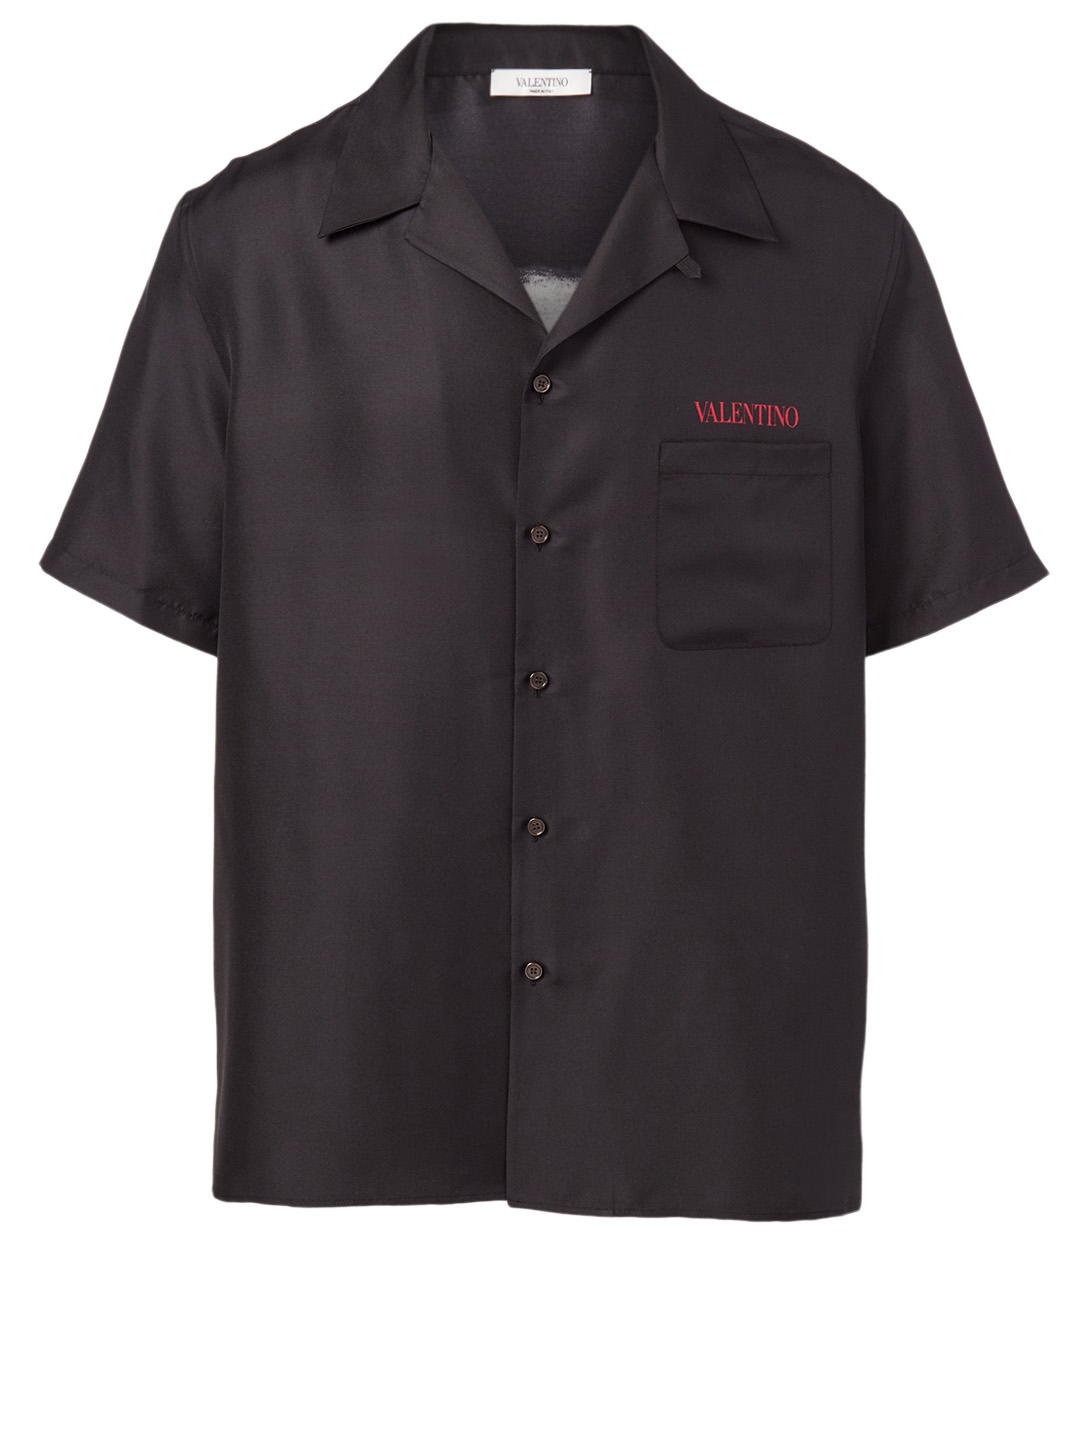 VALENTINO Moon Dust Silk Shirt Men's Black